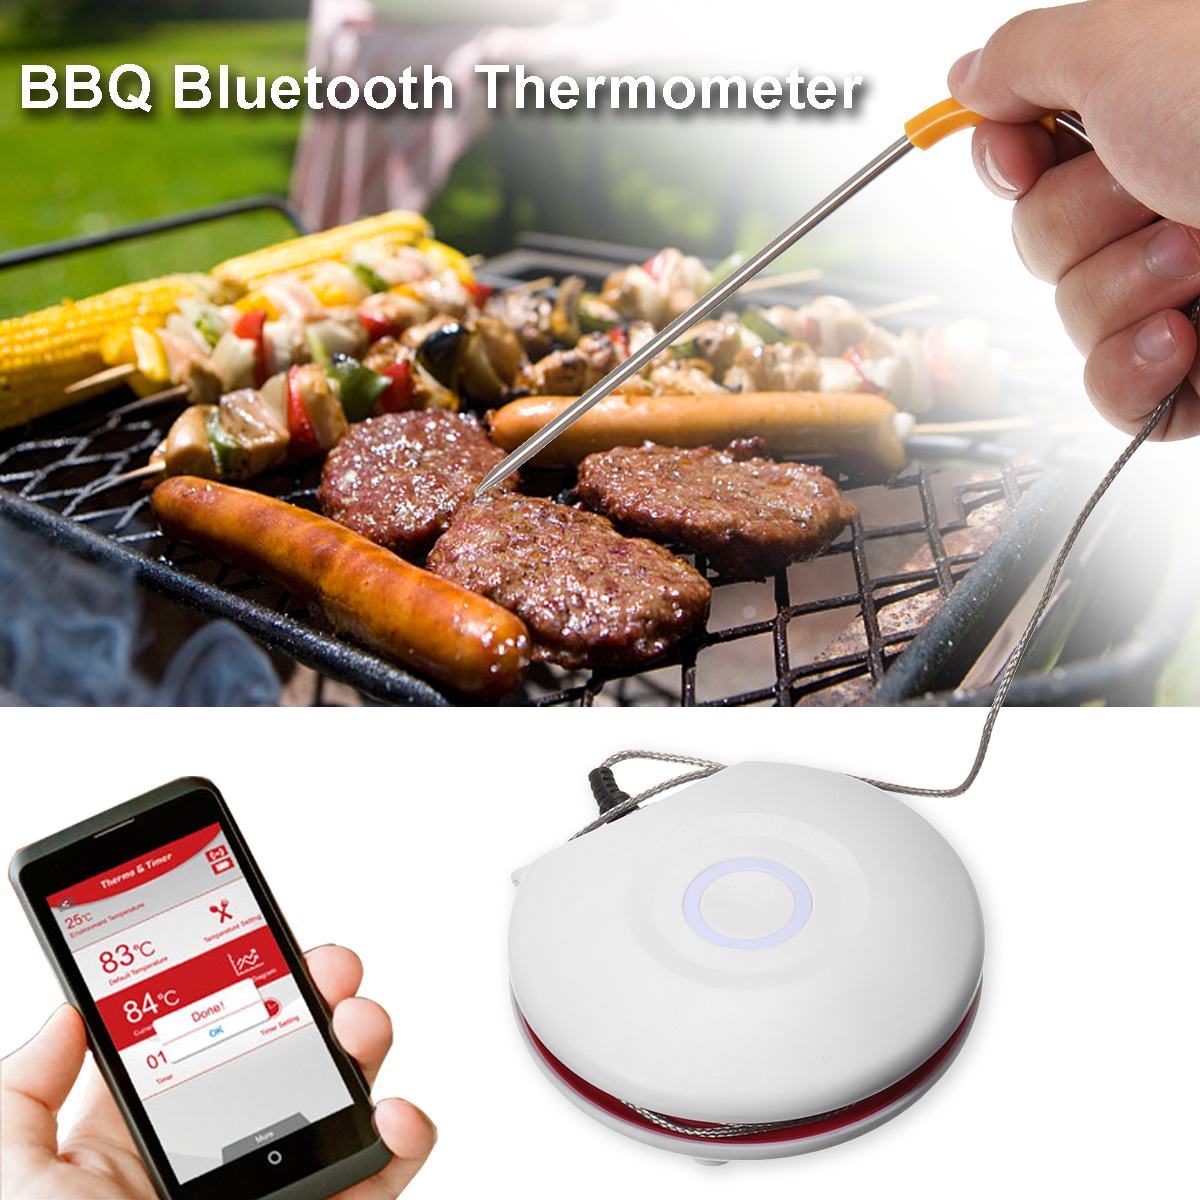 Bluetooth Wireless Digital Meat Thermometer Kitchen Cooking Timer Outdoor BBQ Thermometer